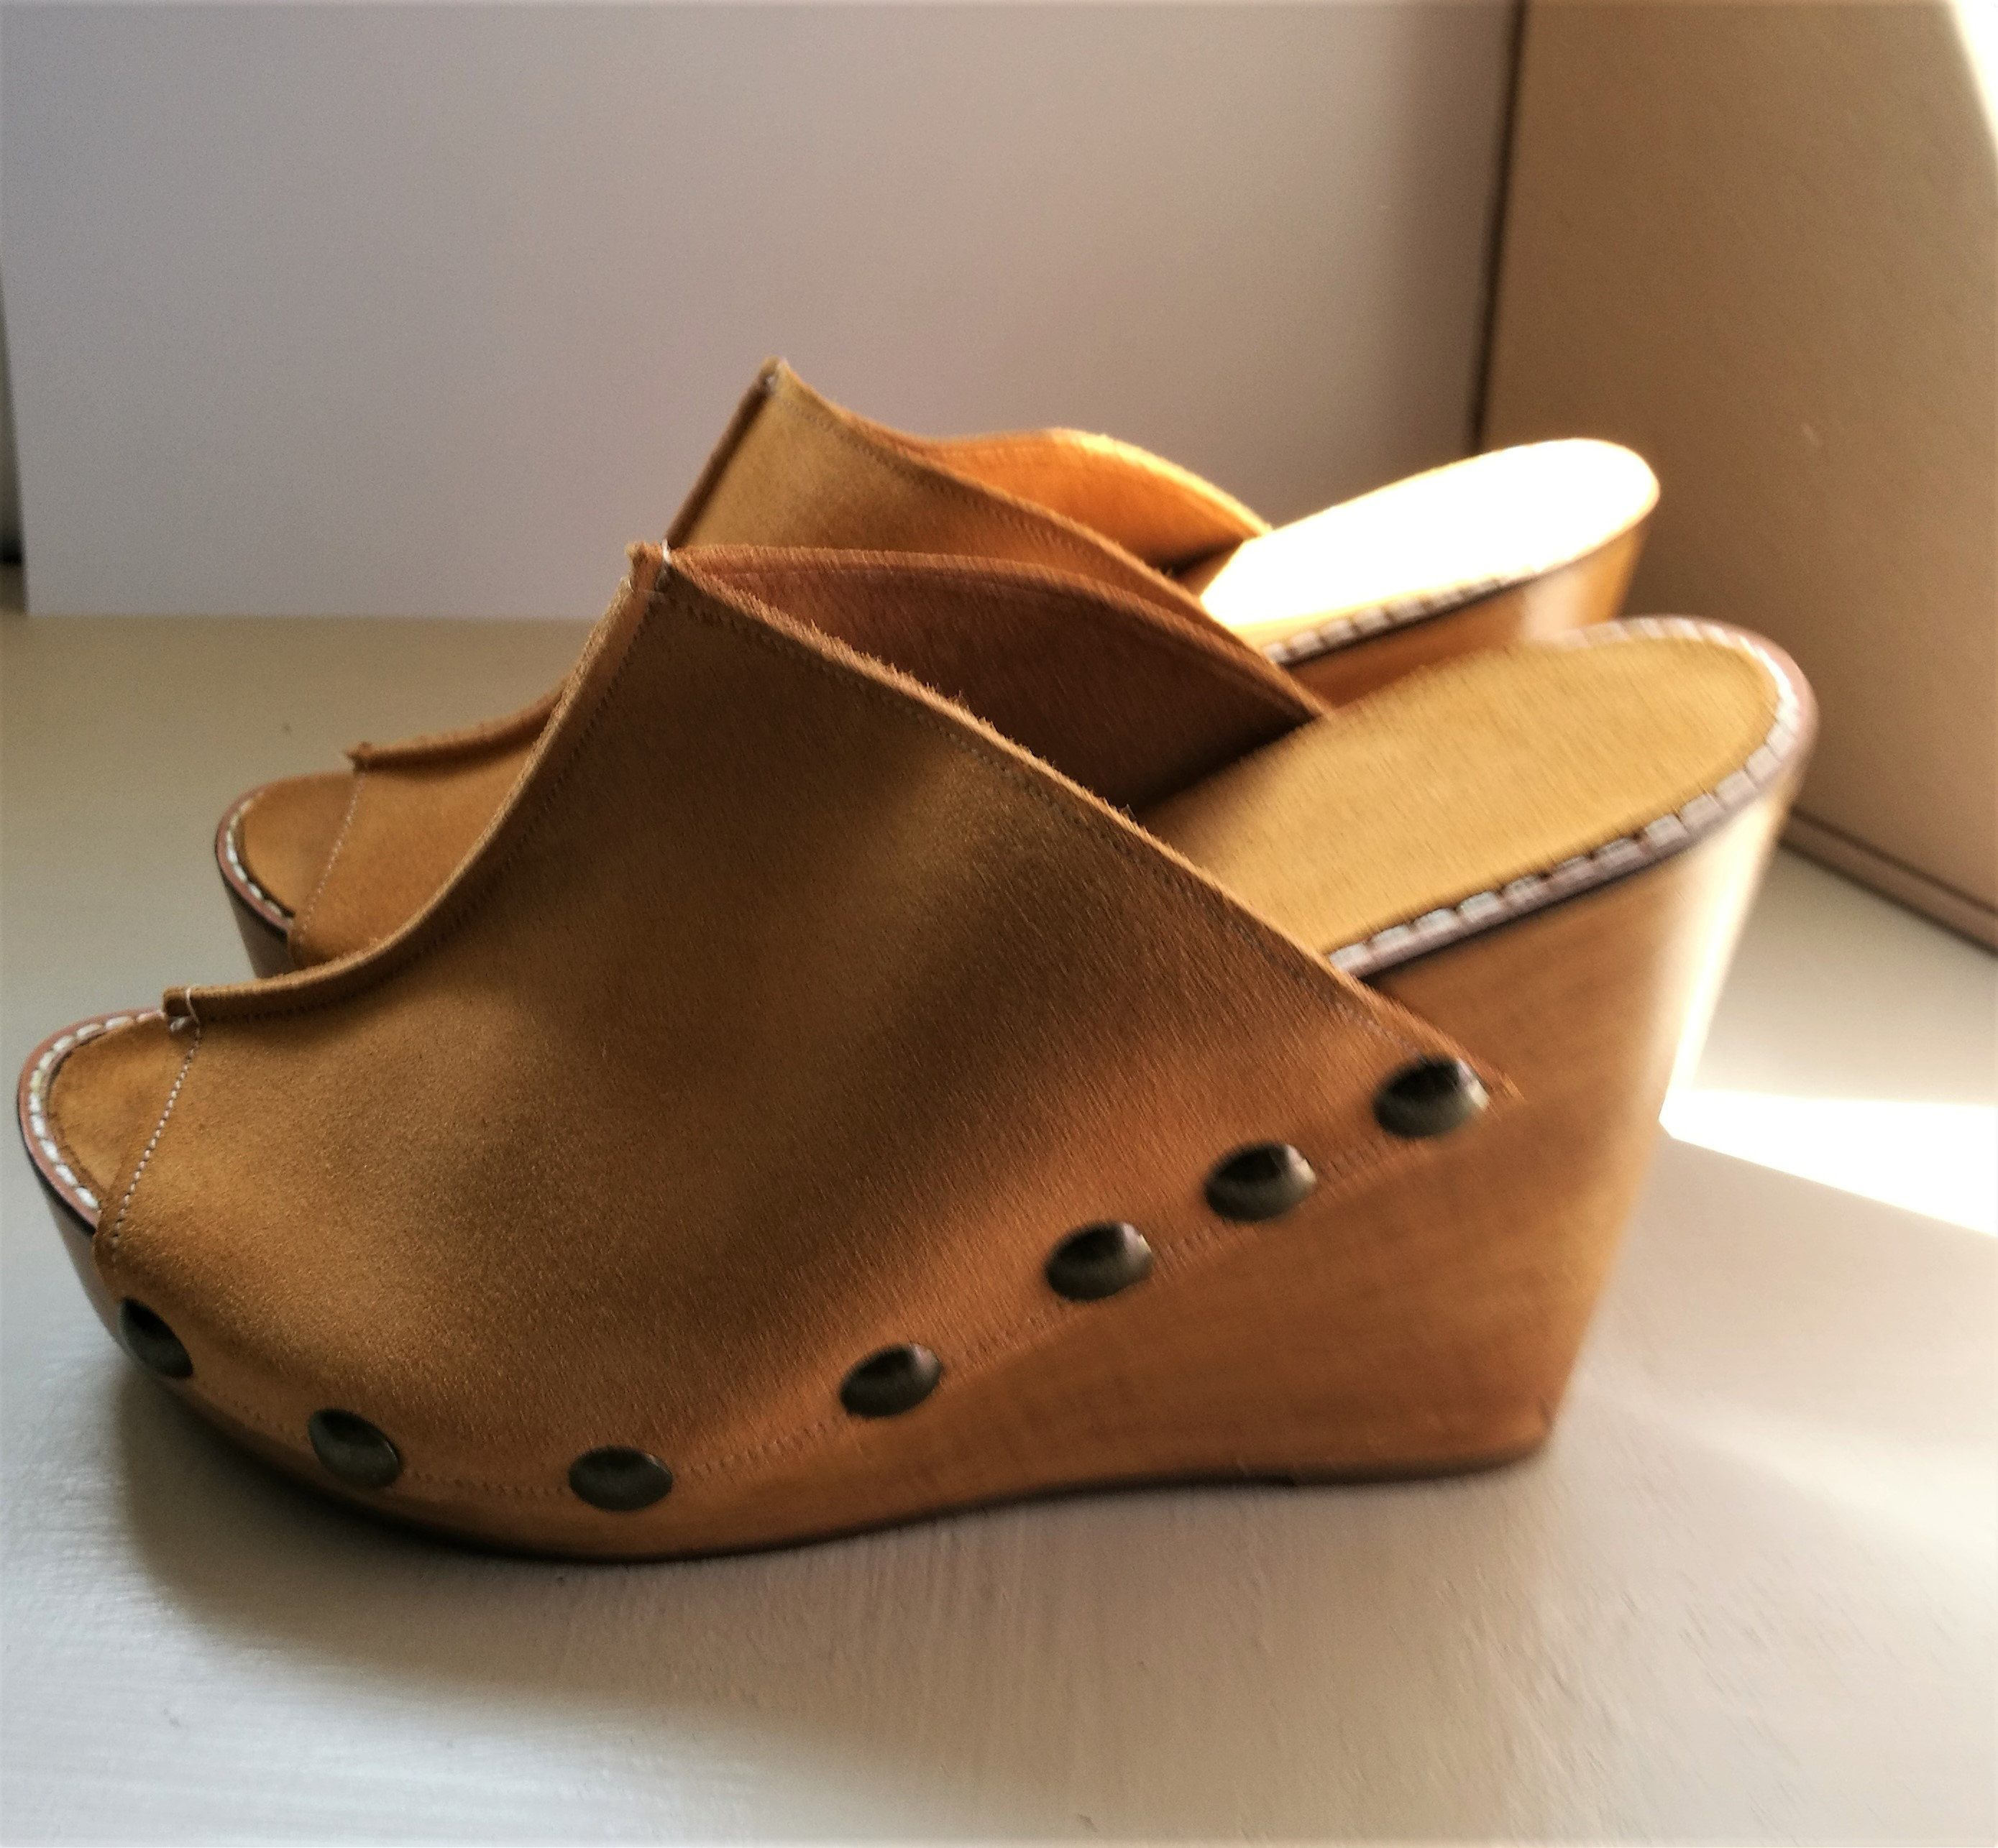 bf72dbeb3d Ladies / Women's Tan Suede Studded Mules / Shoes / Sandals / Wedges, High  Heel